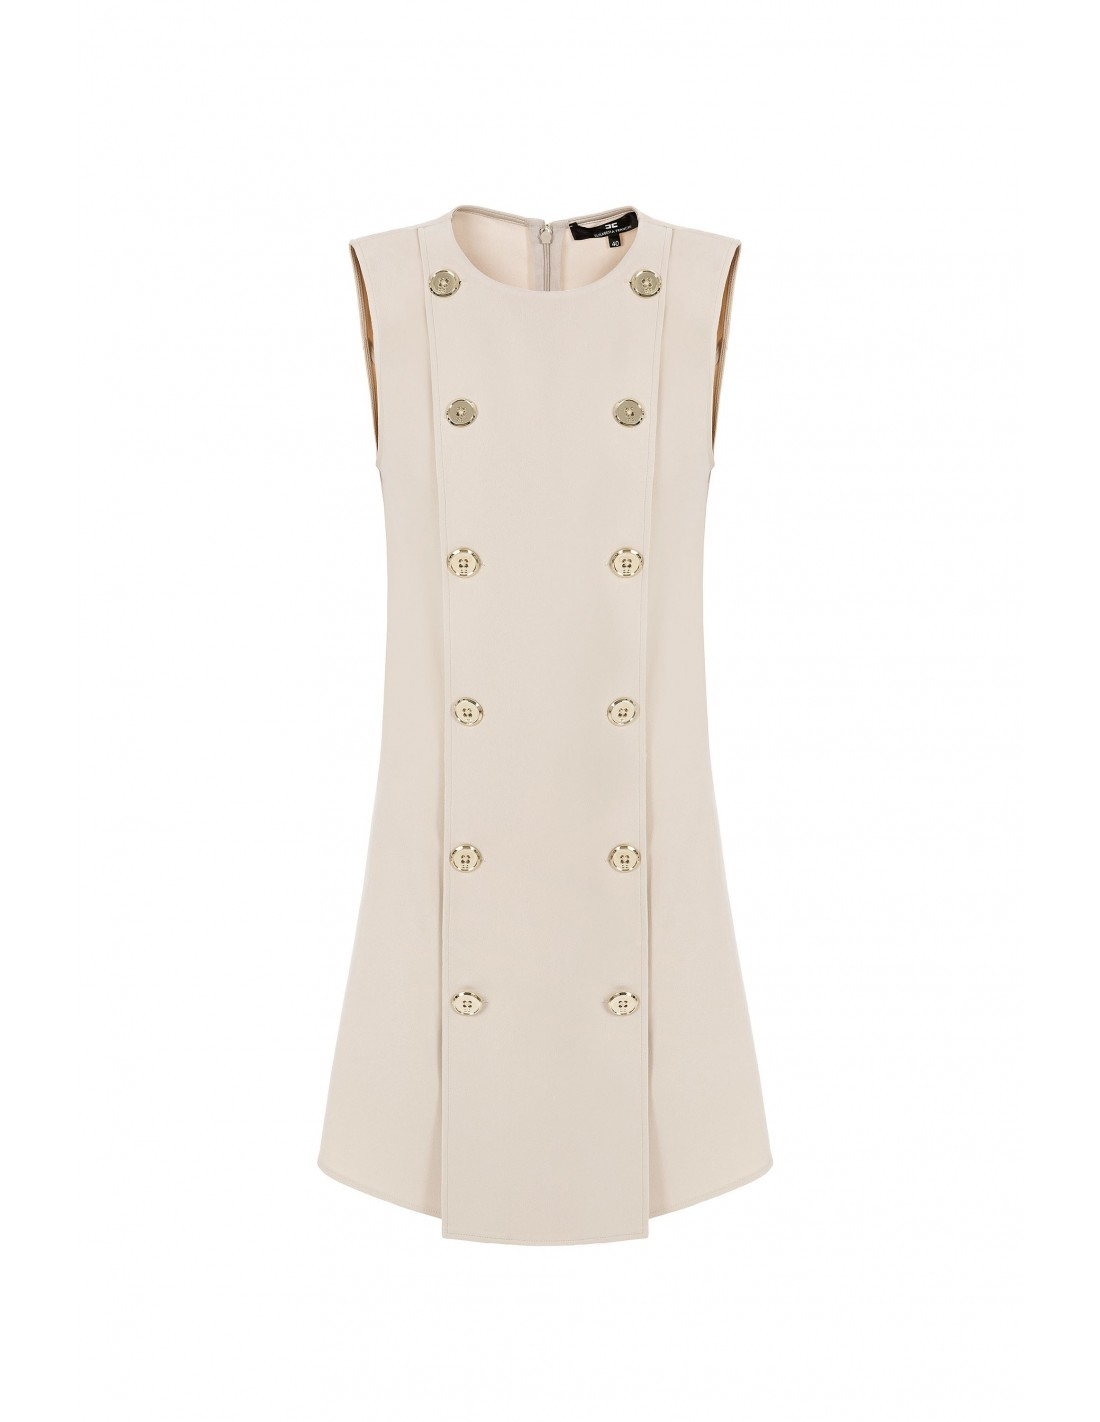 ee658be60977 Elisabetta Franchi Sleeveless Mini Dress - ab05976e2_135